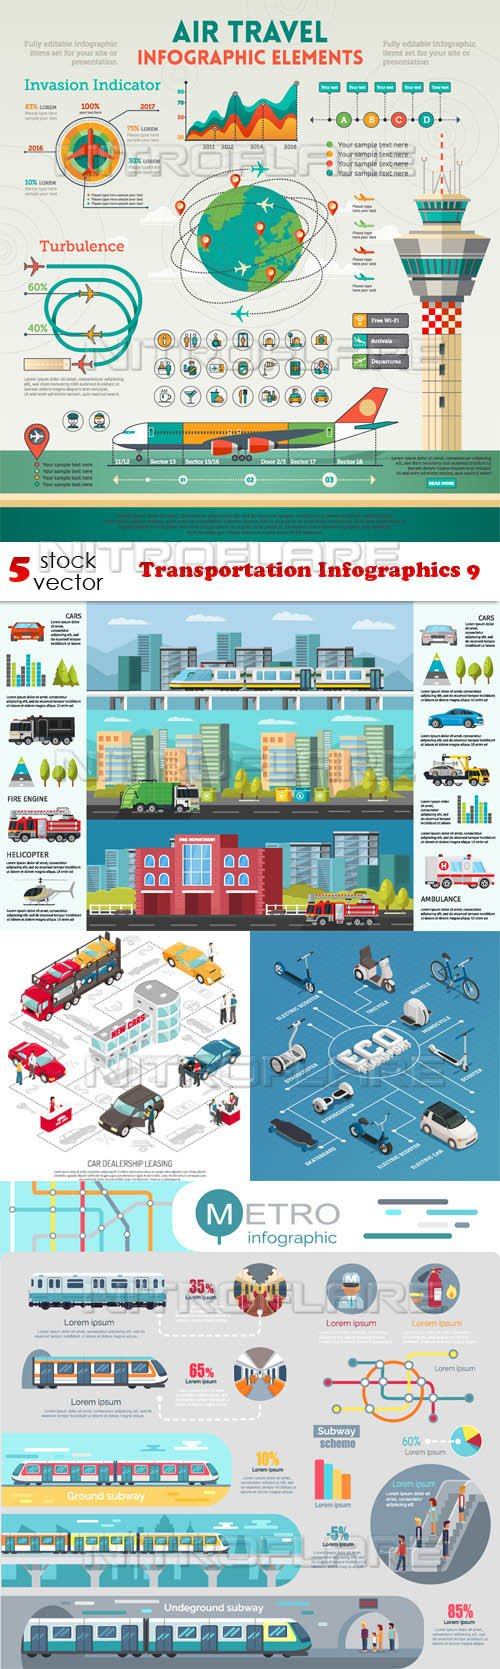 Vectors - Transportation Infographics 9